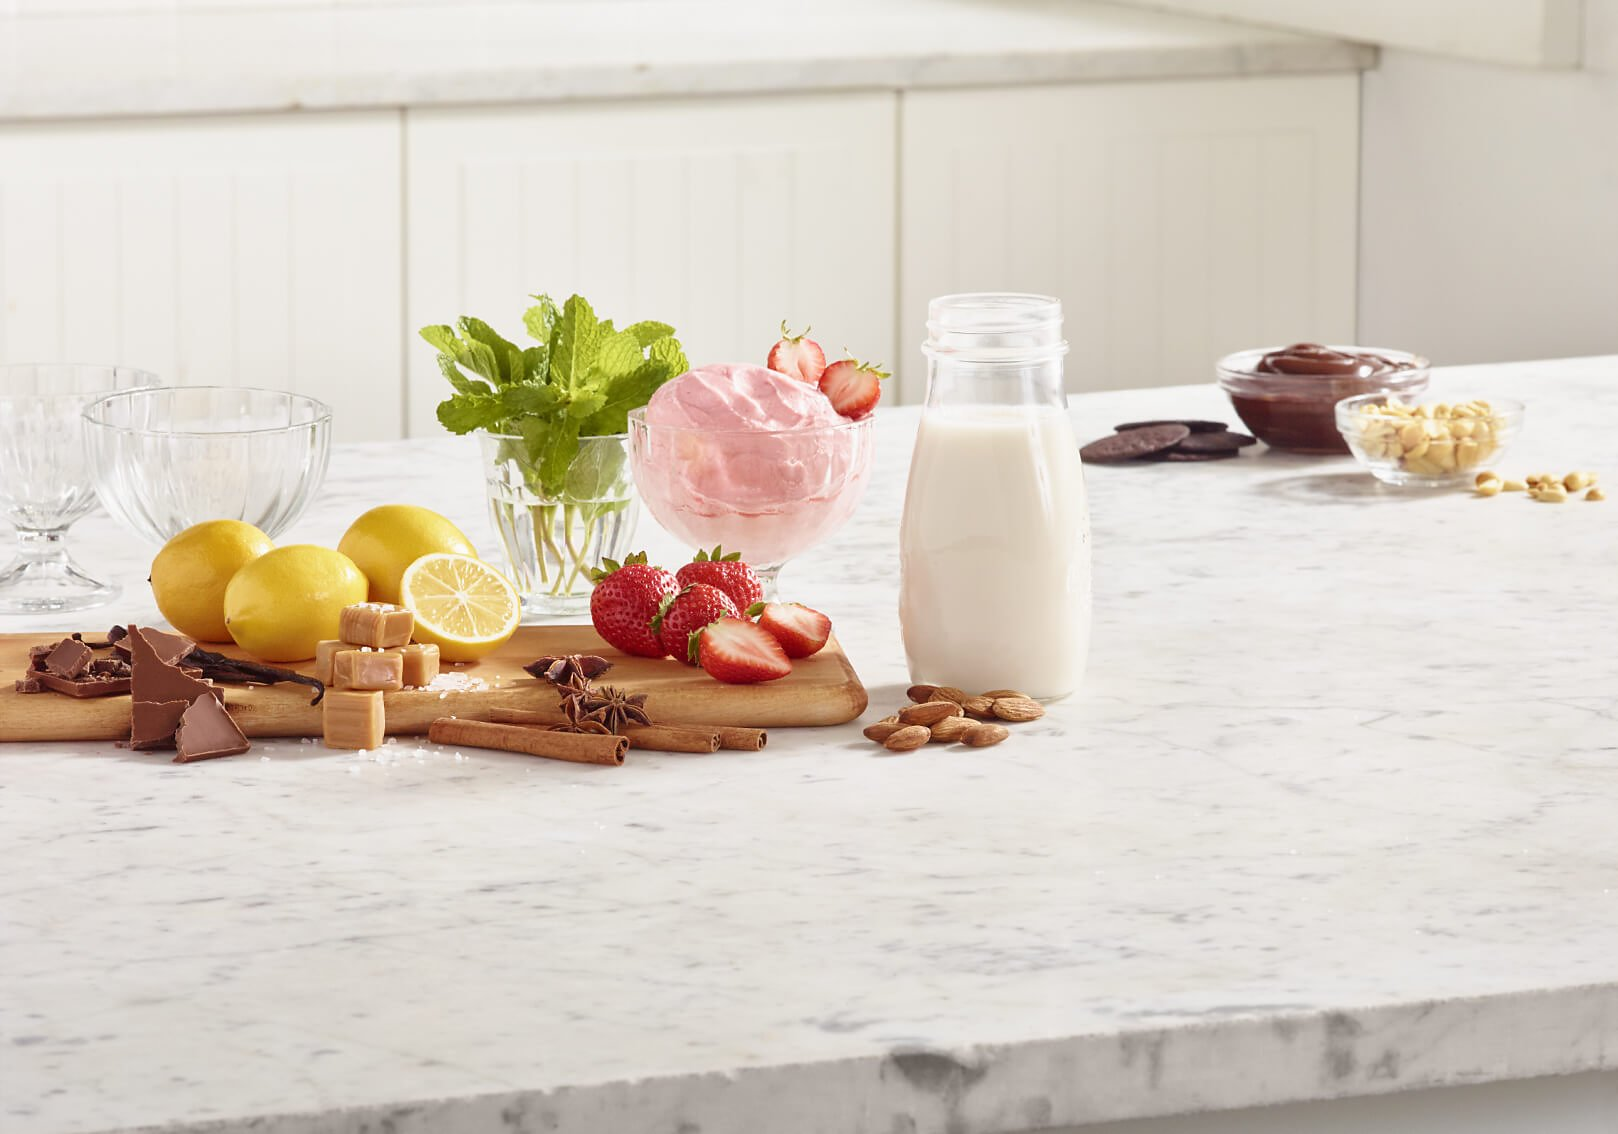 Ingredients and toppings for making frozen yogurt at home.